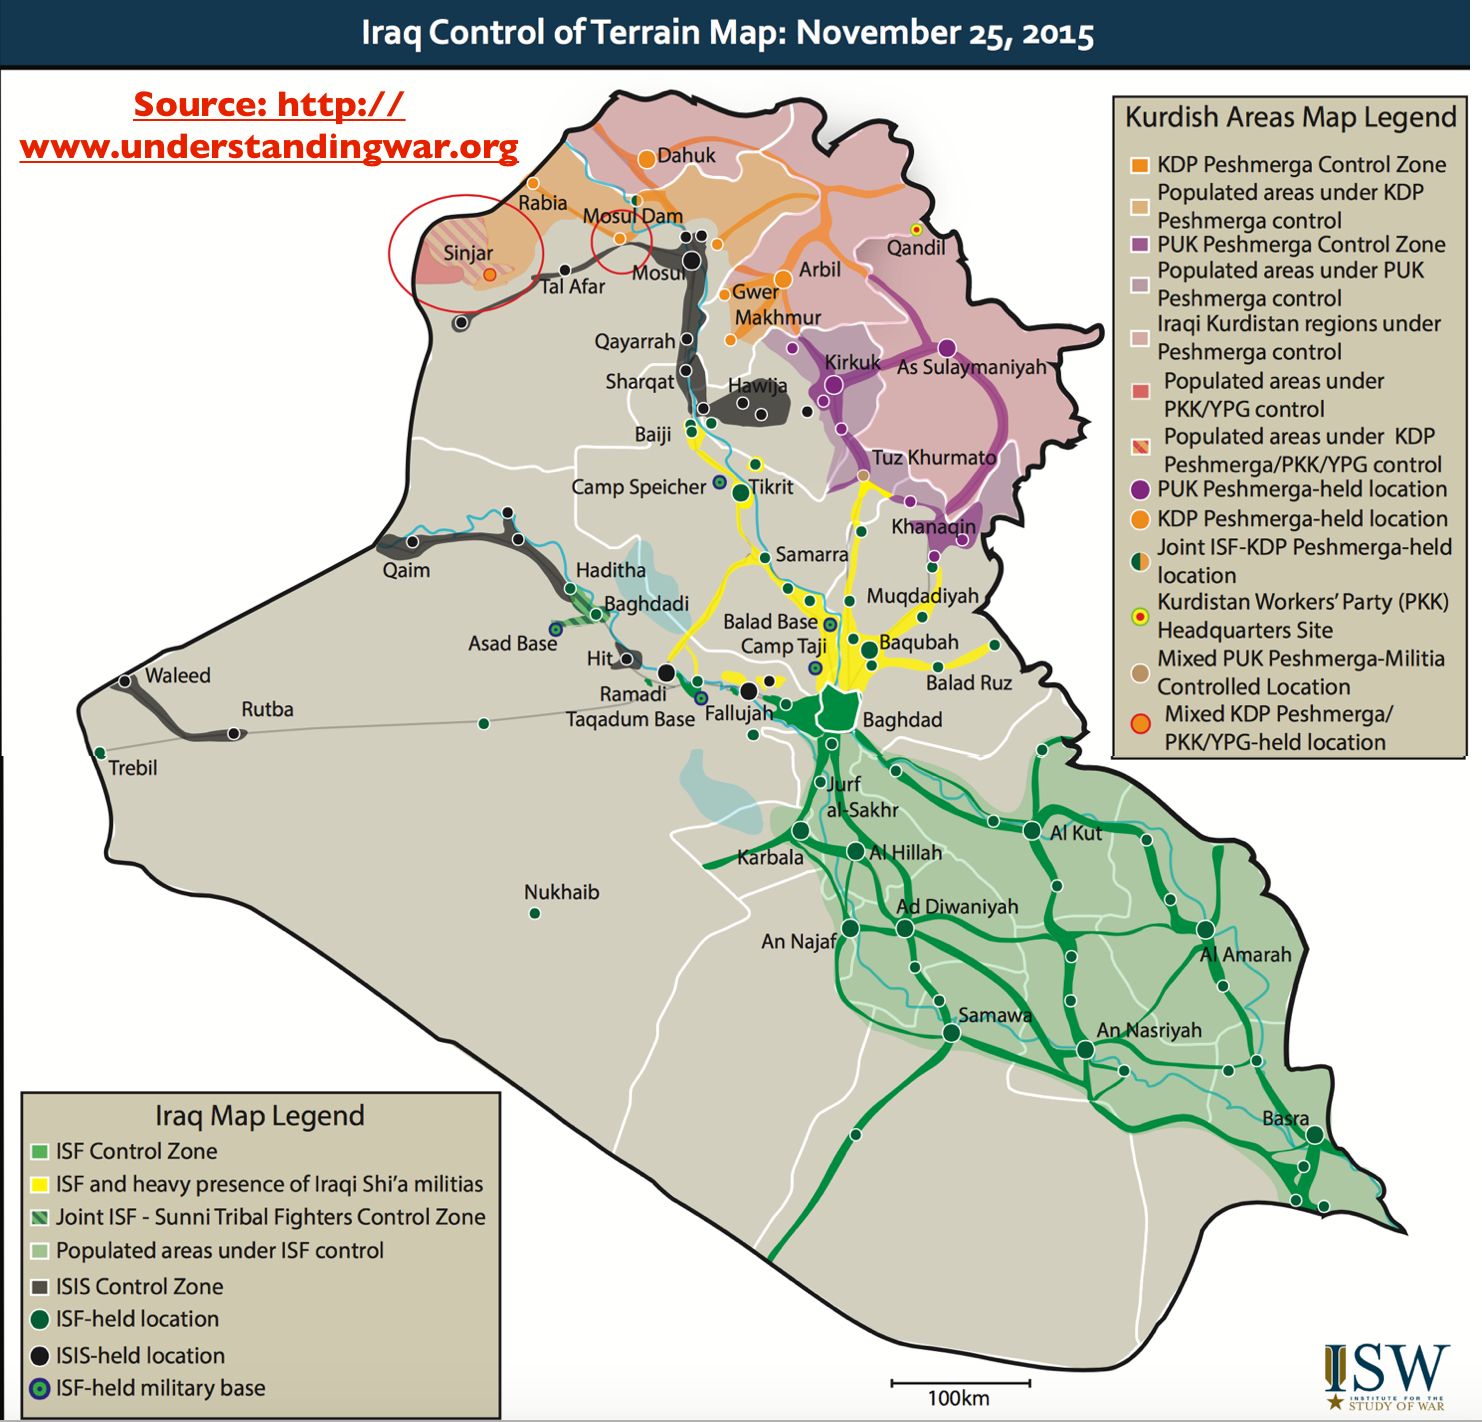 Superb Maps from the Institute for the Study of War ISW and the